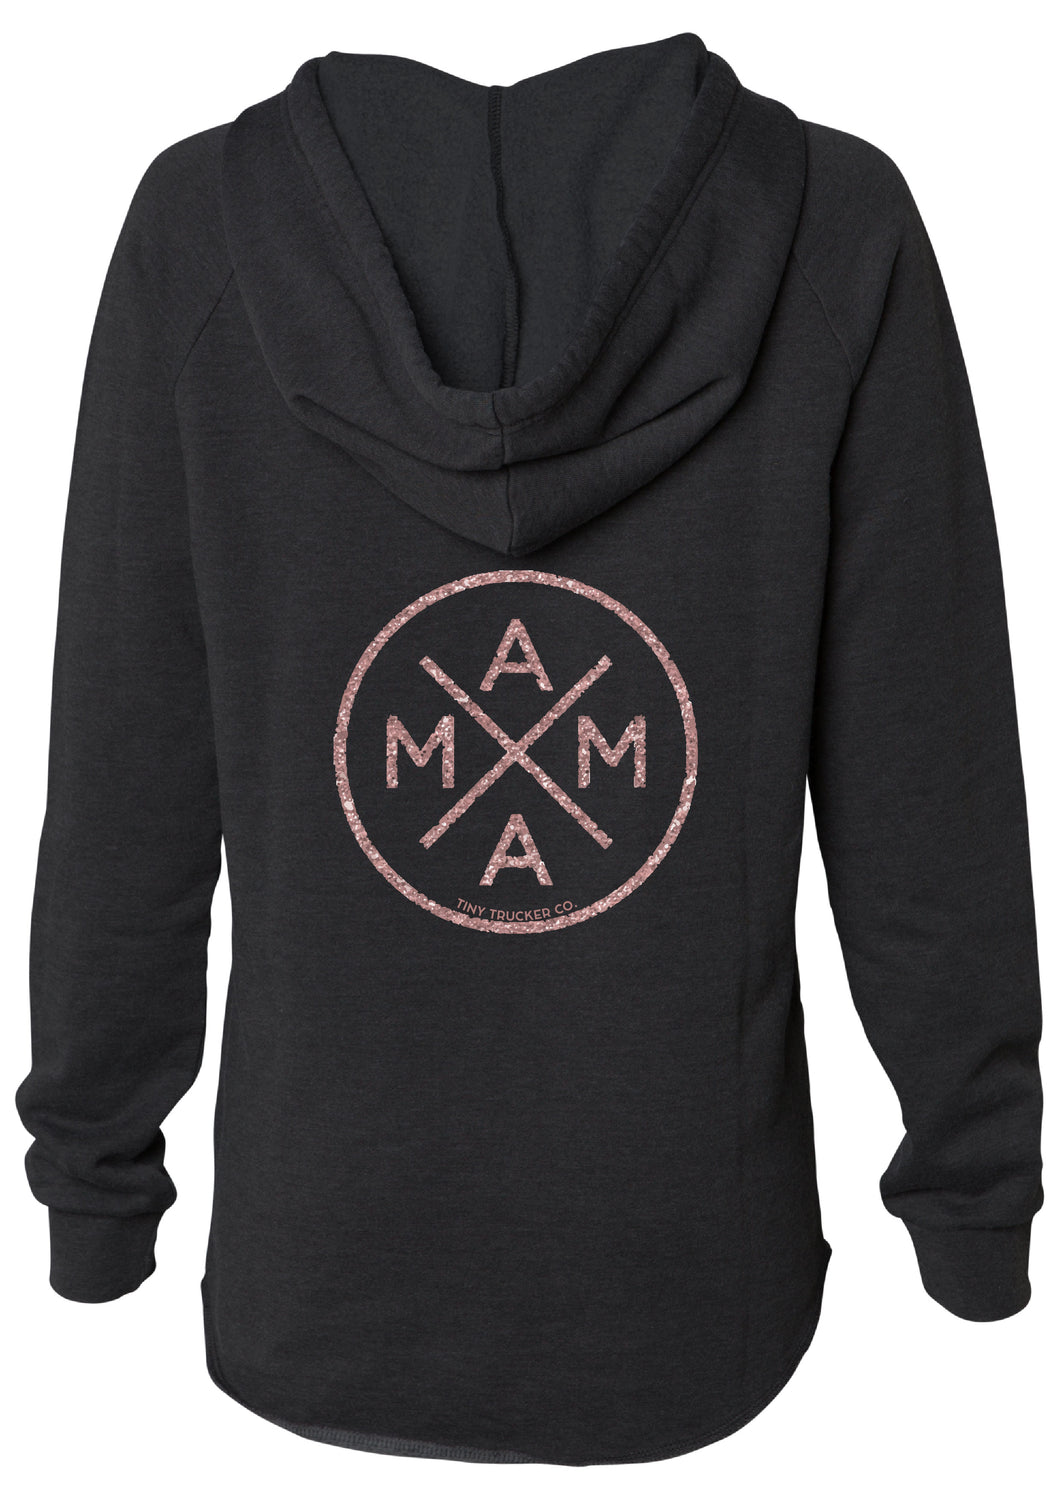 MAMA X ™ V-NECK SWEATSHIRT - ROSE GOLD